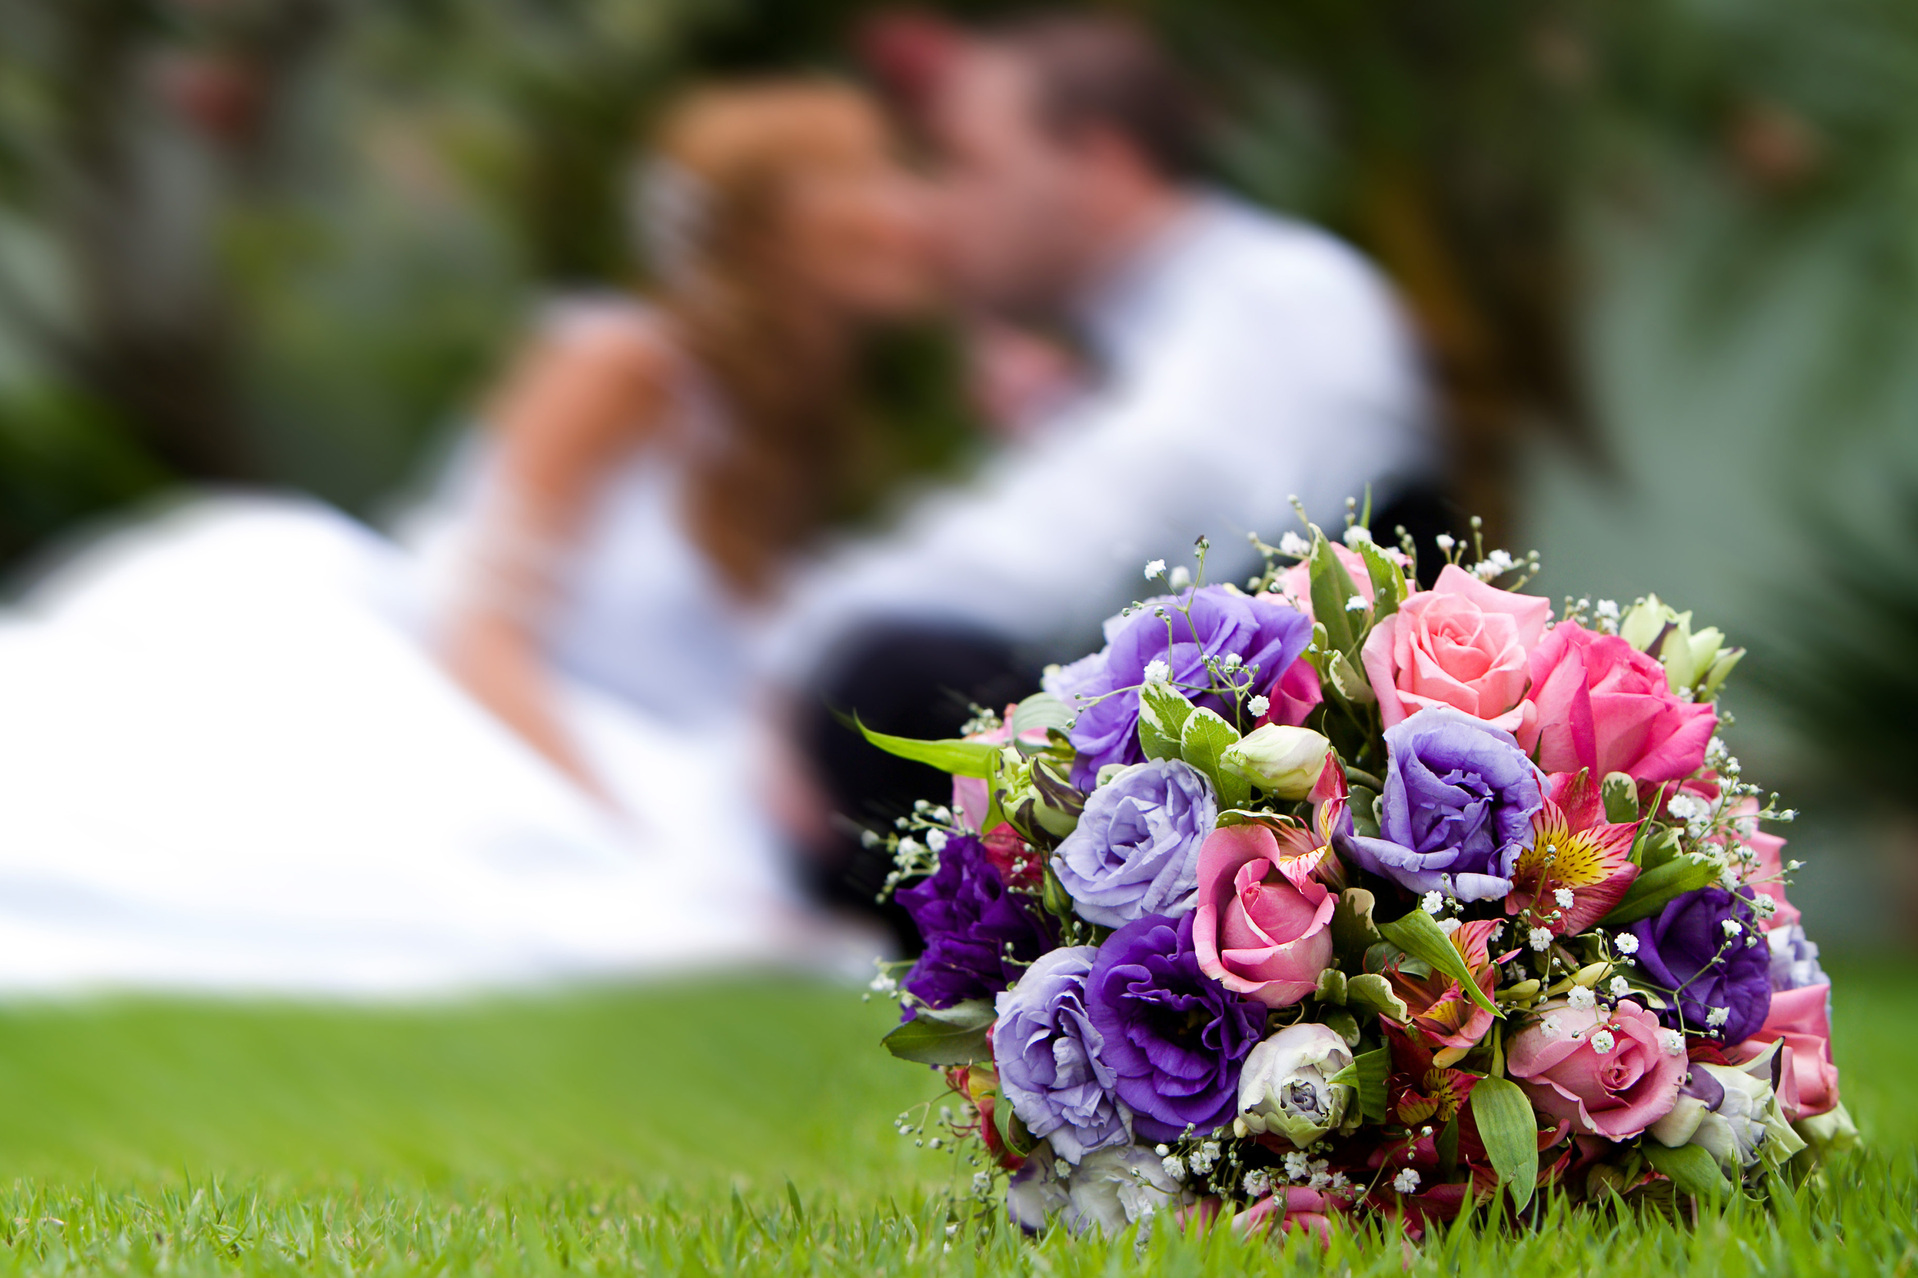 beautiful-bouquet-with-groom-and-bride-at-back-1374339-1918x1278